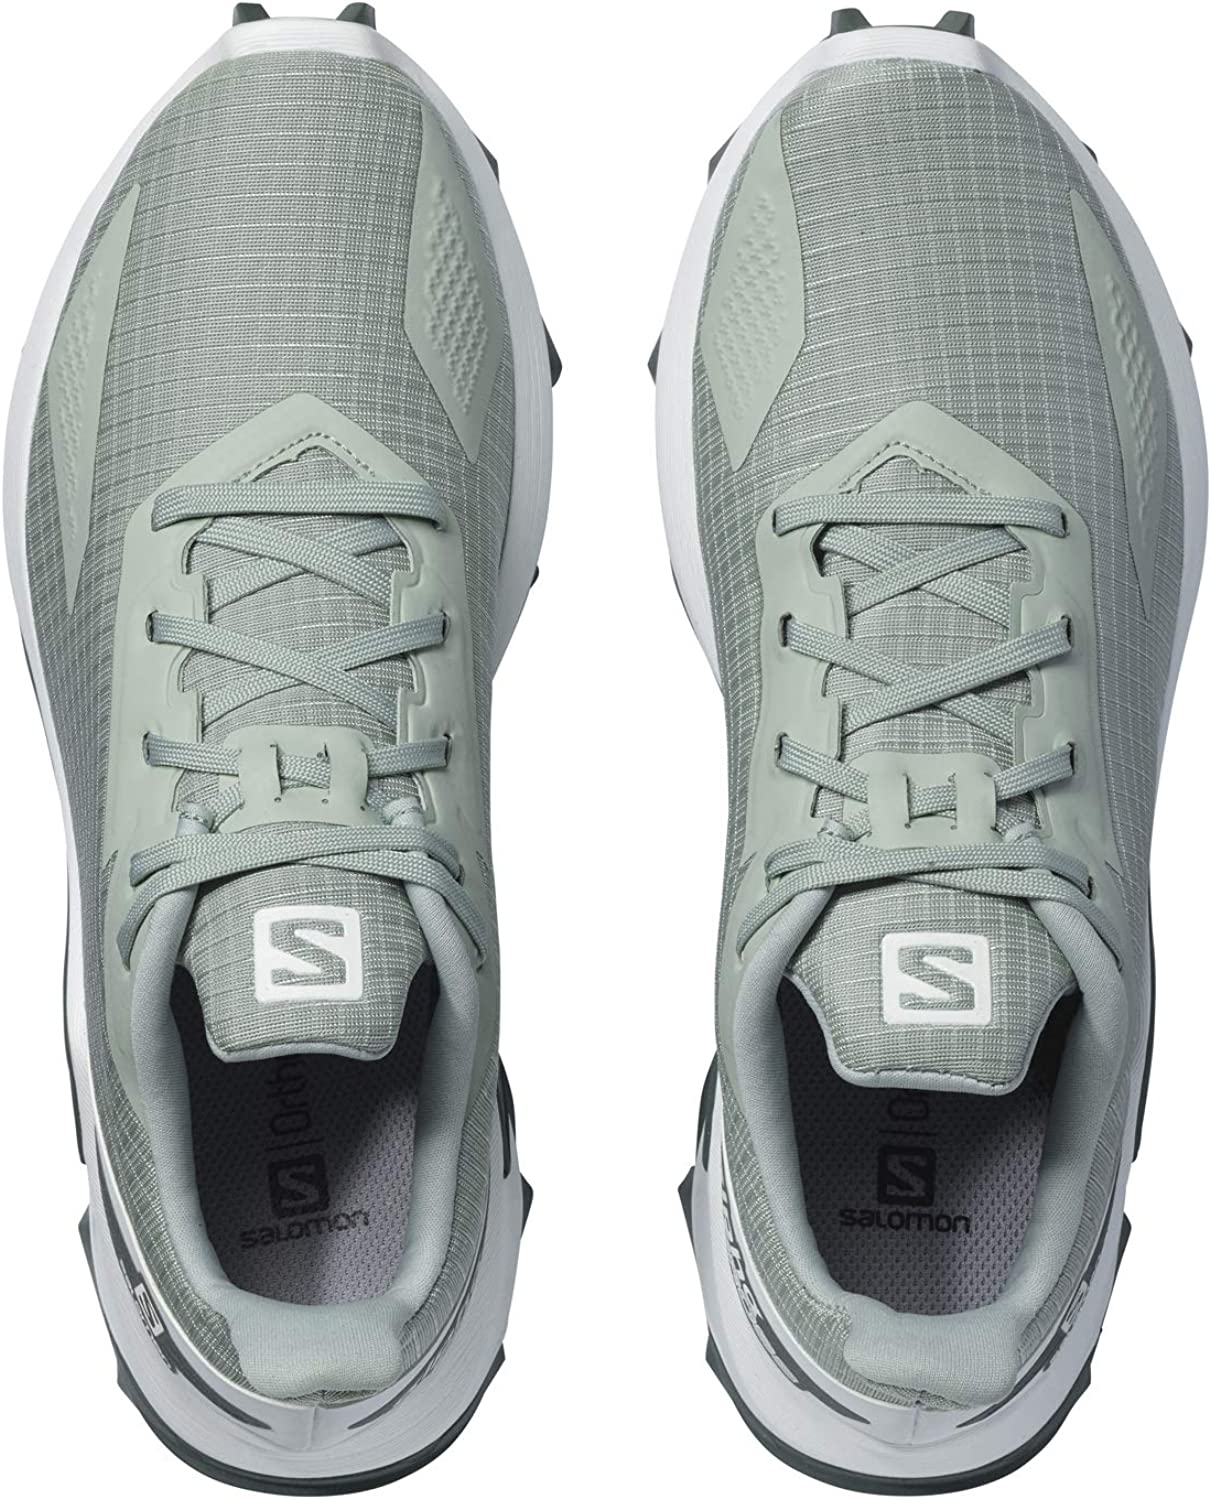 Salomon ALPHACROSS BLAST W Womens Shoes With Ripstop Fabric for Trail Running